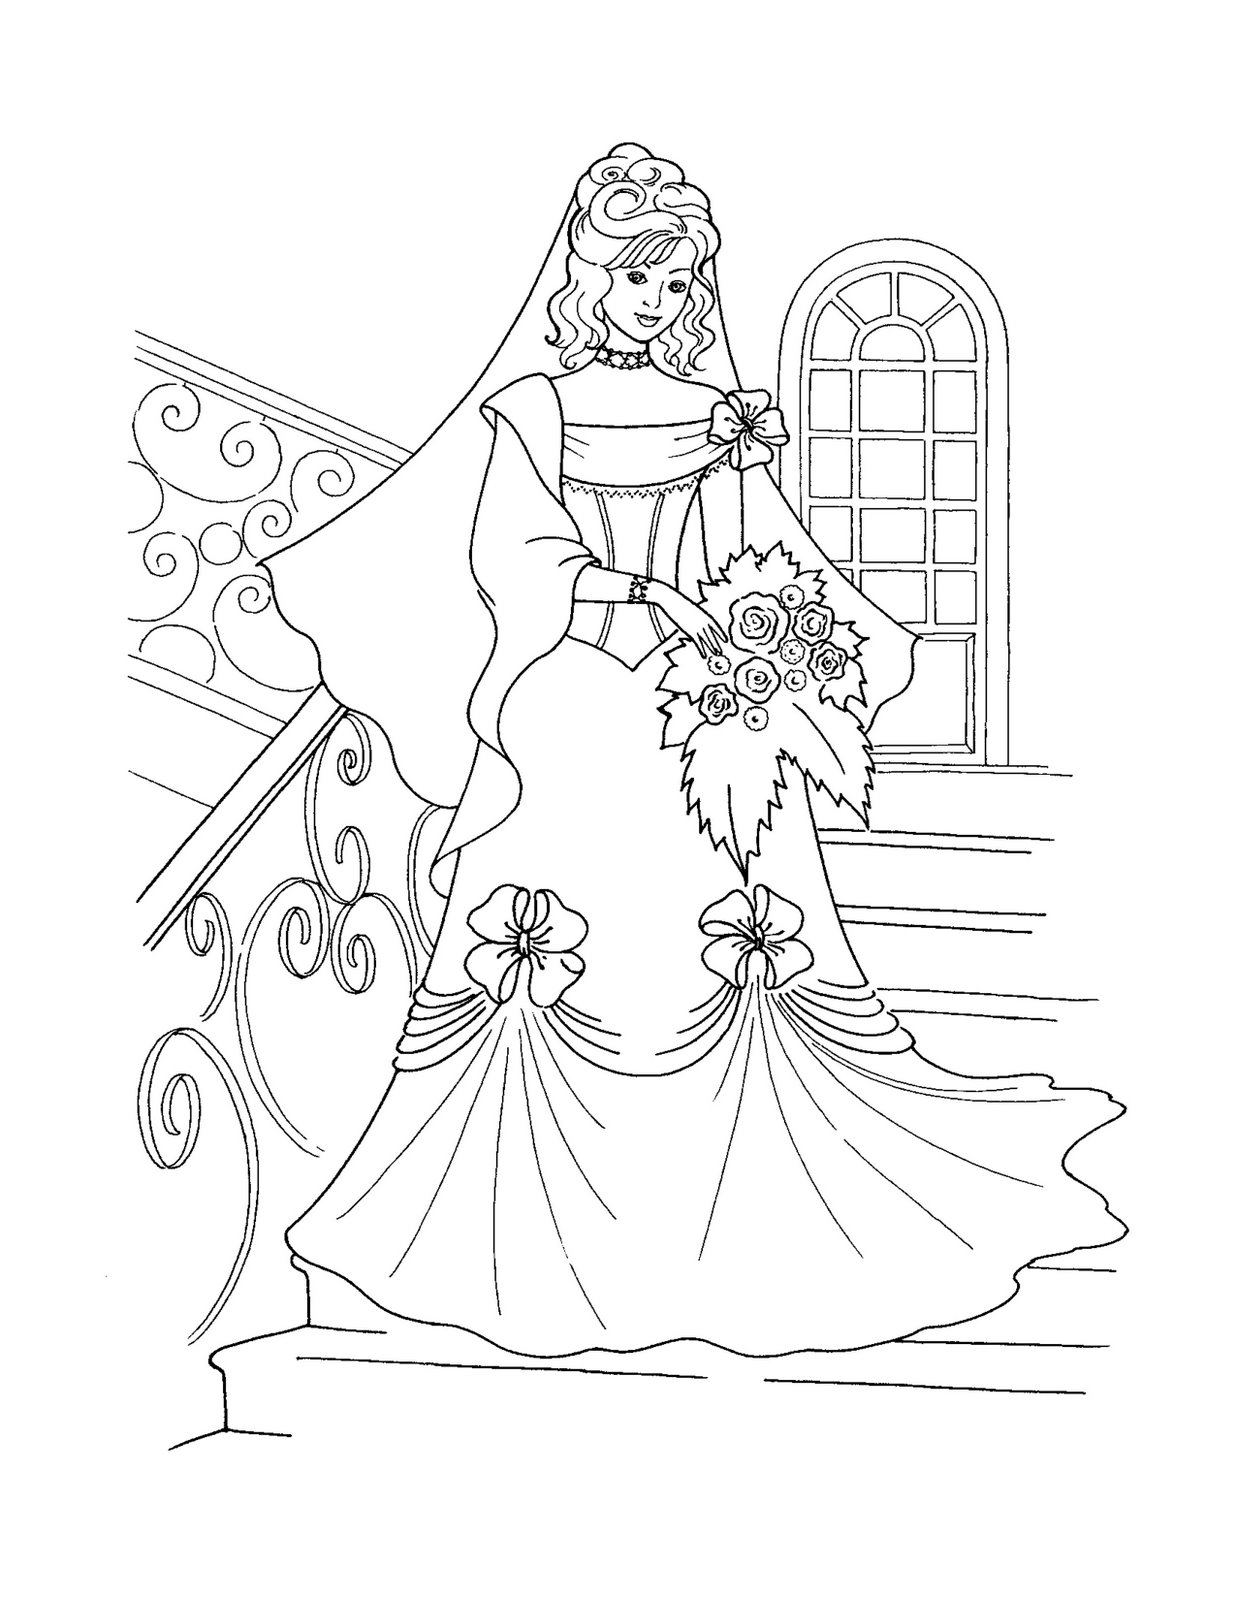 Adult Top Cinderella Castle Coloring Page Gallery Images best cinderella castle coloring pages printable for images